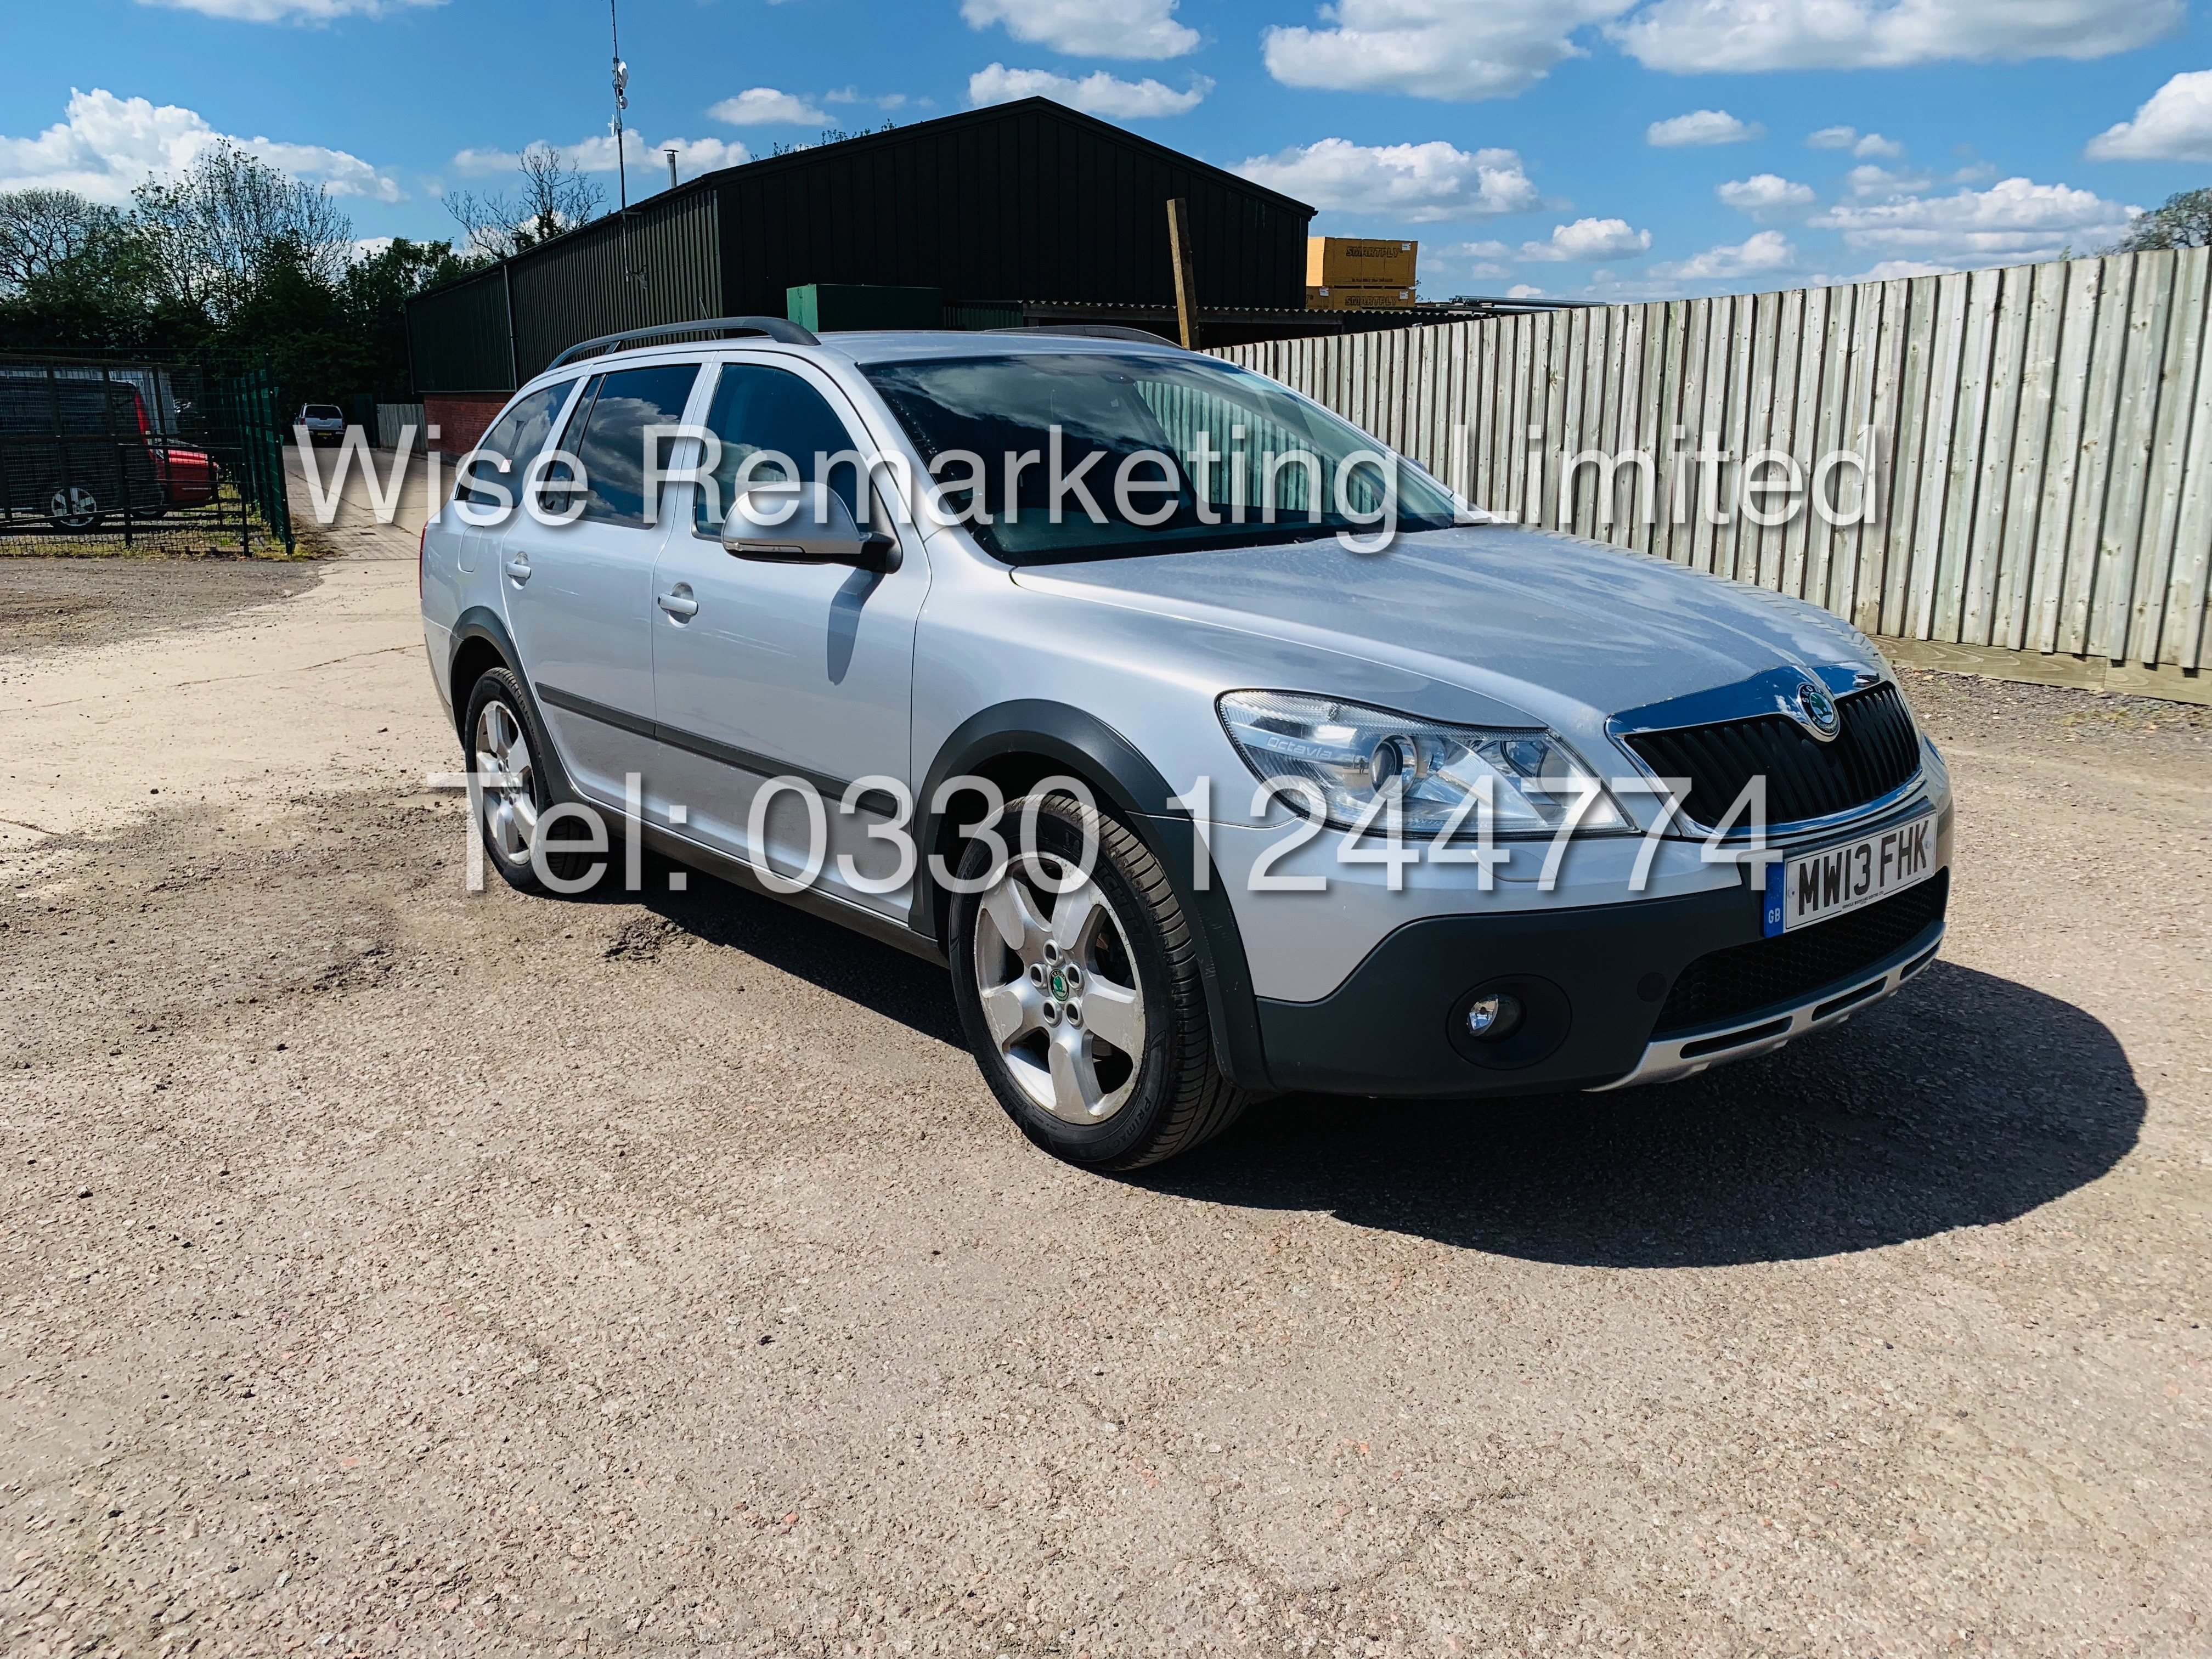 **RESERVE MET** SKODA OCTAVIA (SCOUT) 2.0tdi DSG AUTOMATIC ESTATE / 2013 / 1 OWNER WITH FULL HISTORY